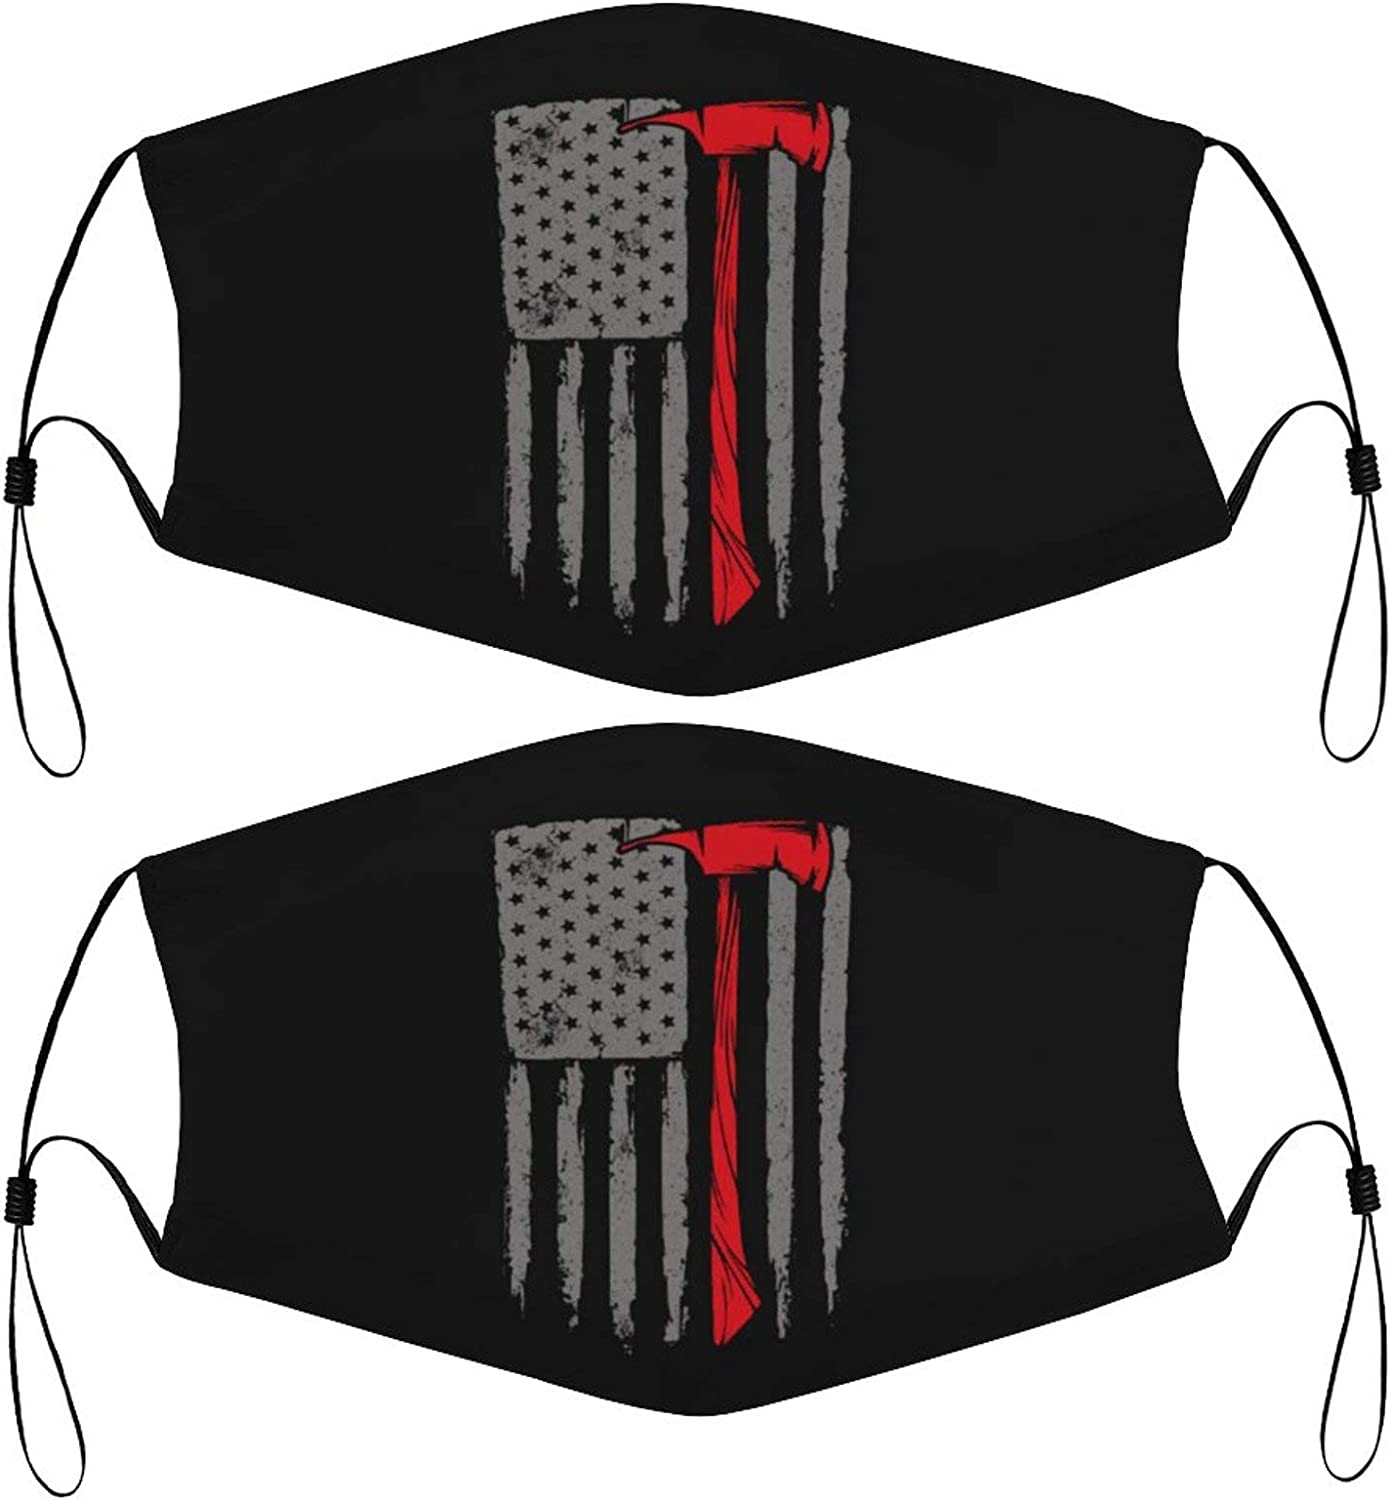 Ff-Firefighter Kids Face Mask Set of 2 with 4 Filters Washable Reusable Adjustable Black Cloth Bandanas Scarf Neck Gaiters for Adult Men Women Fashion Designs